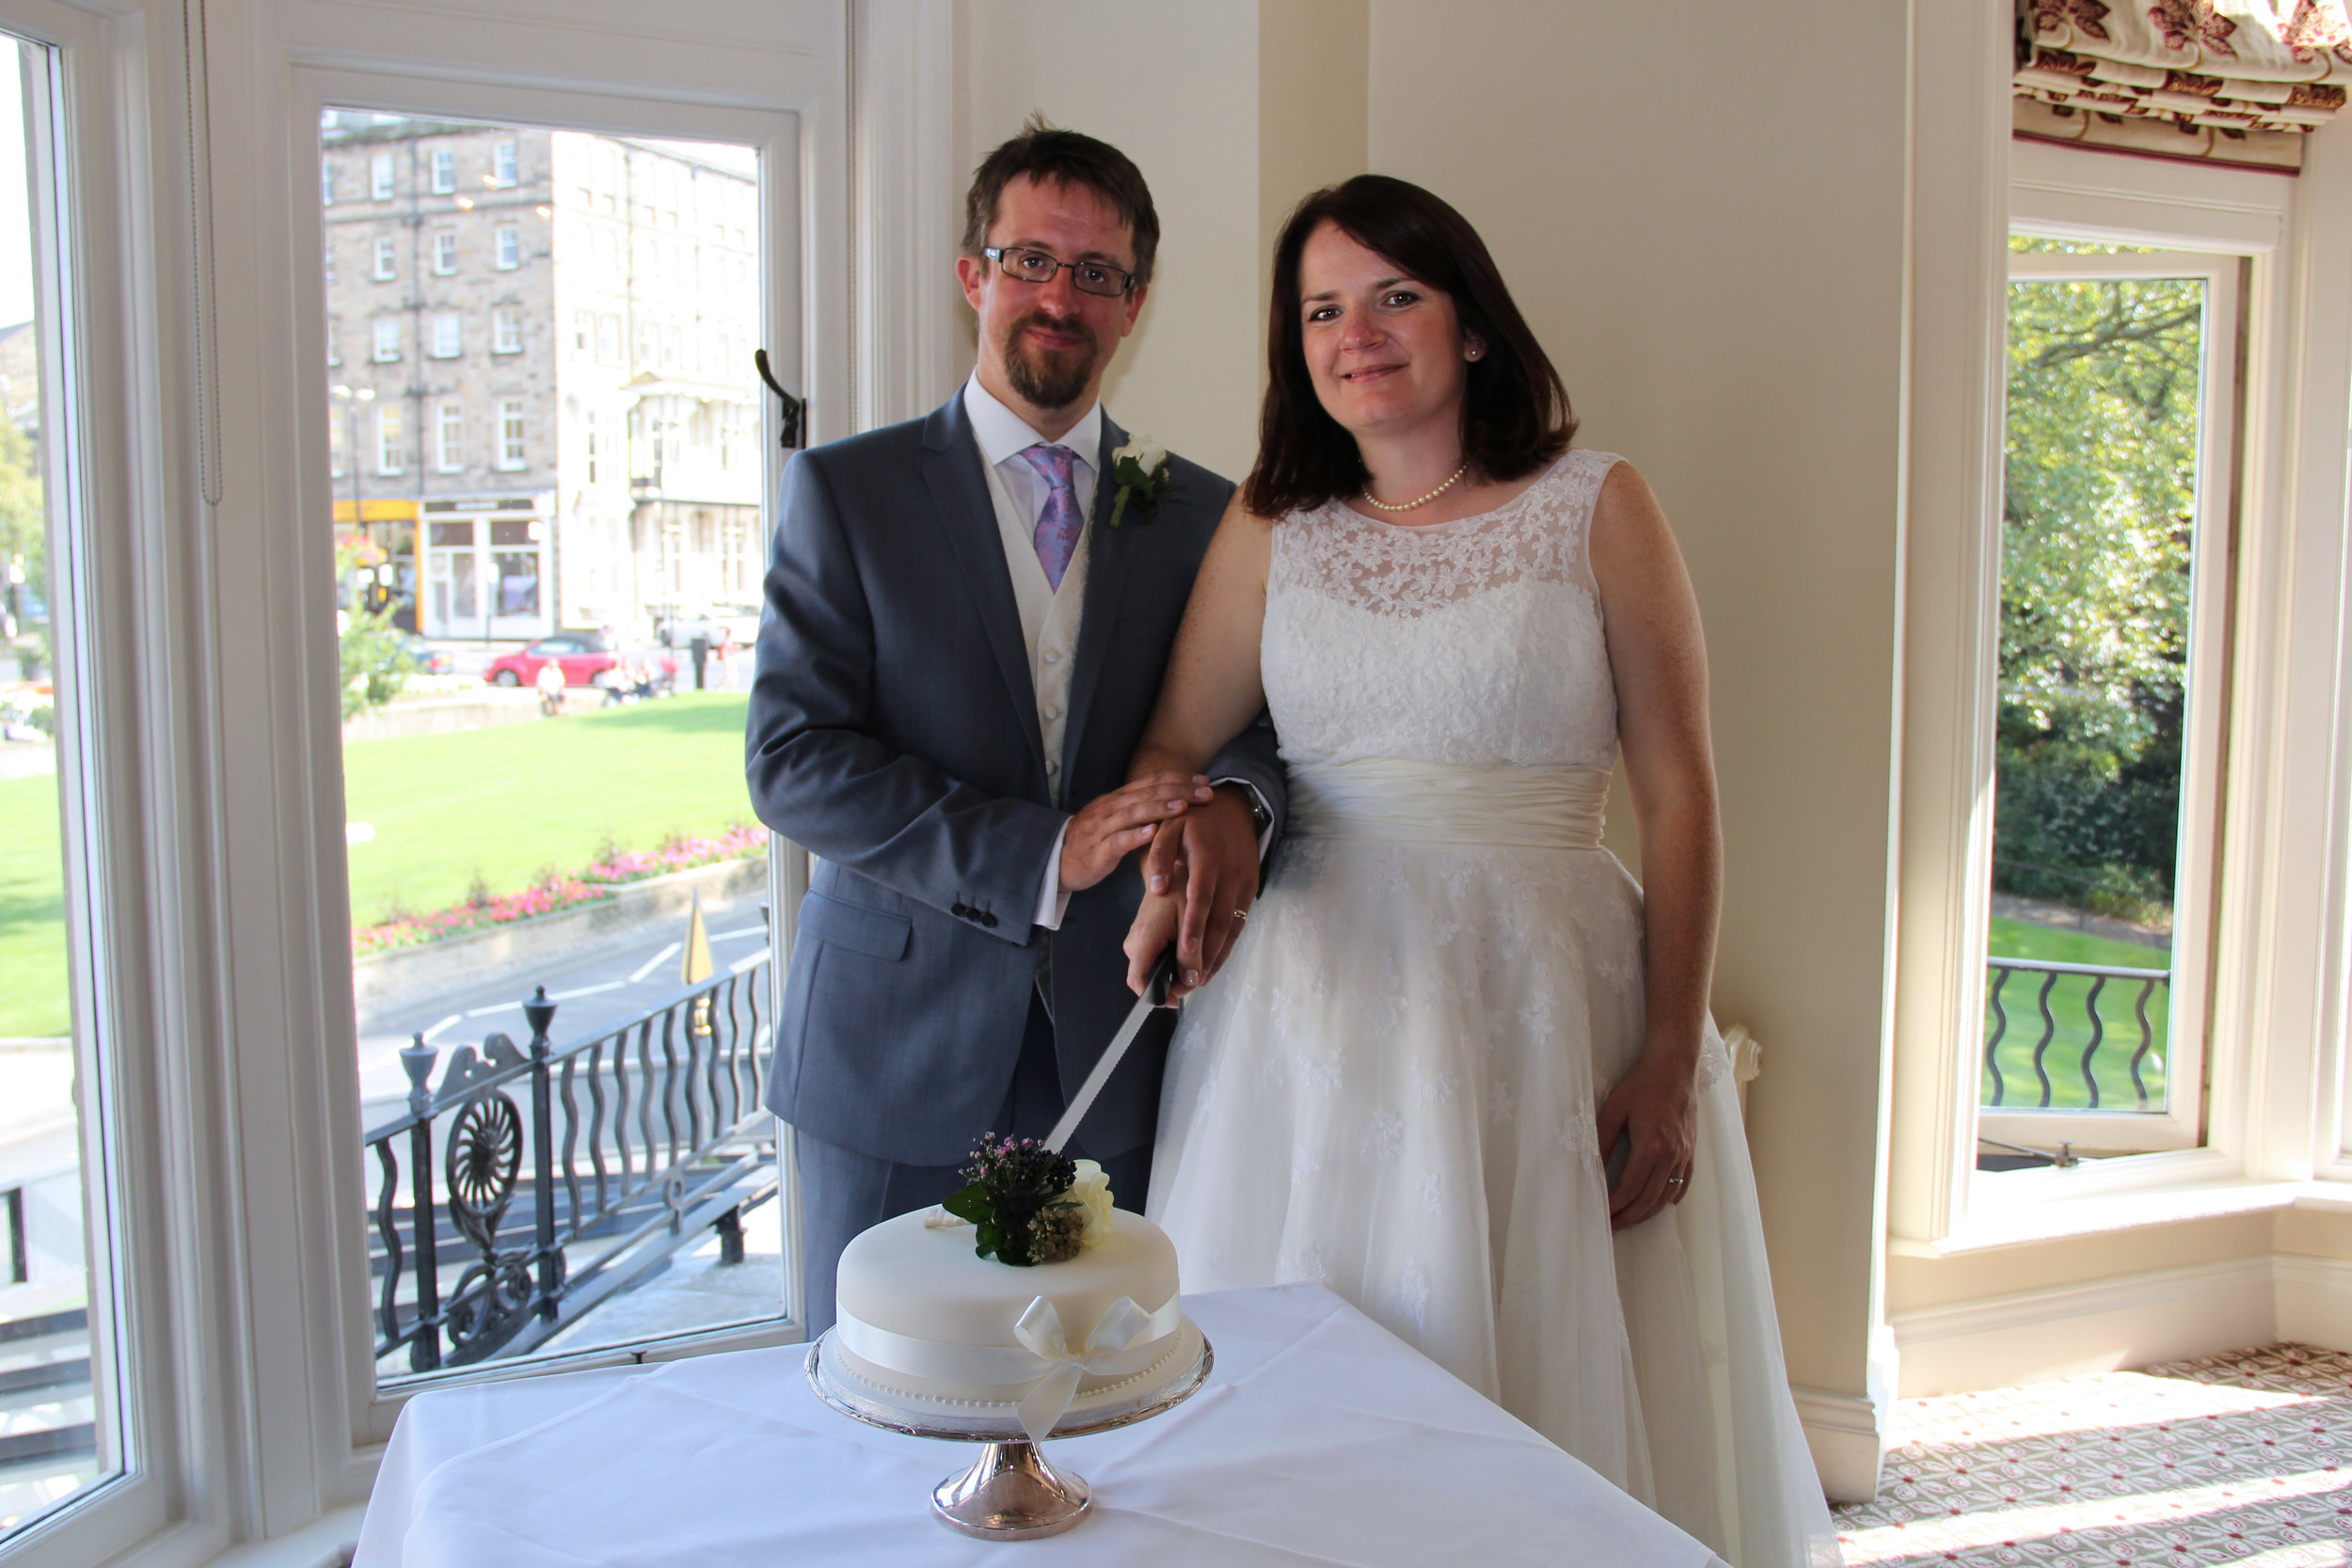 Mr and Mrs Tuckwell